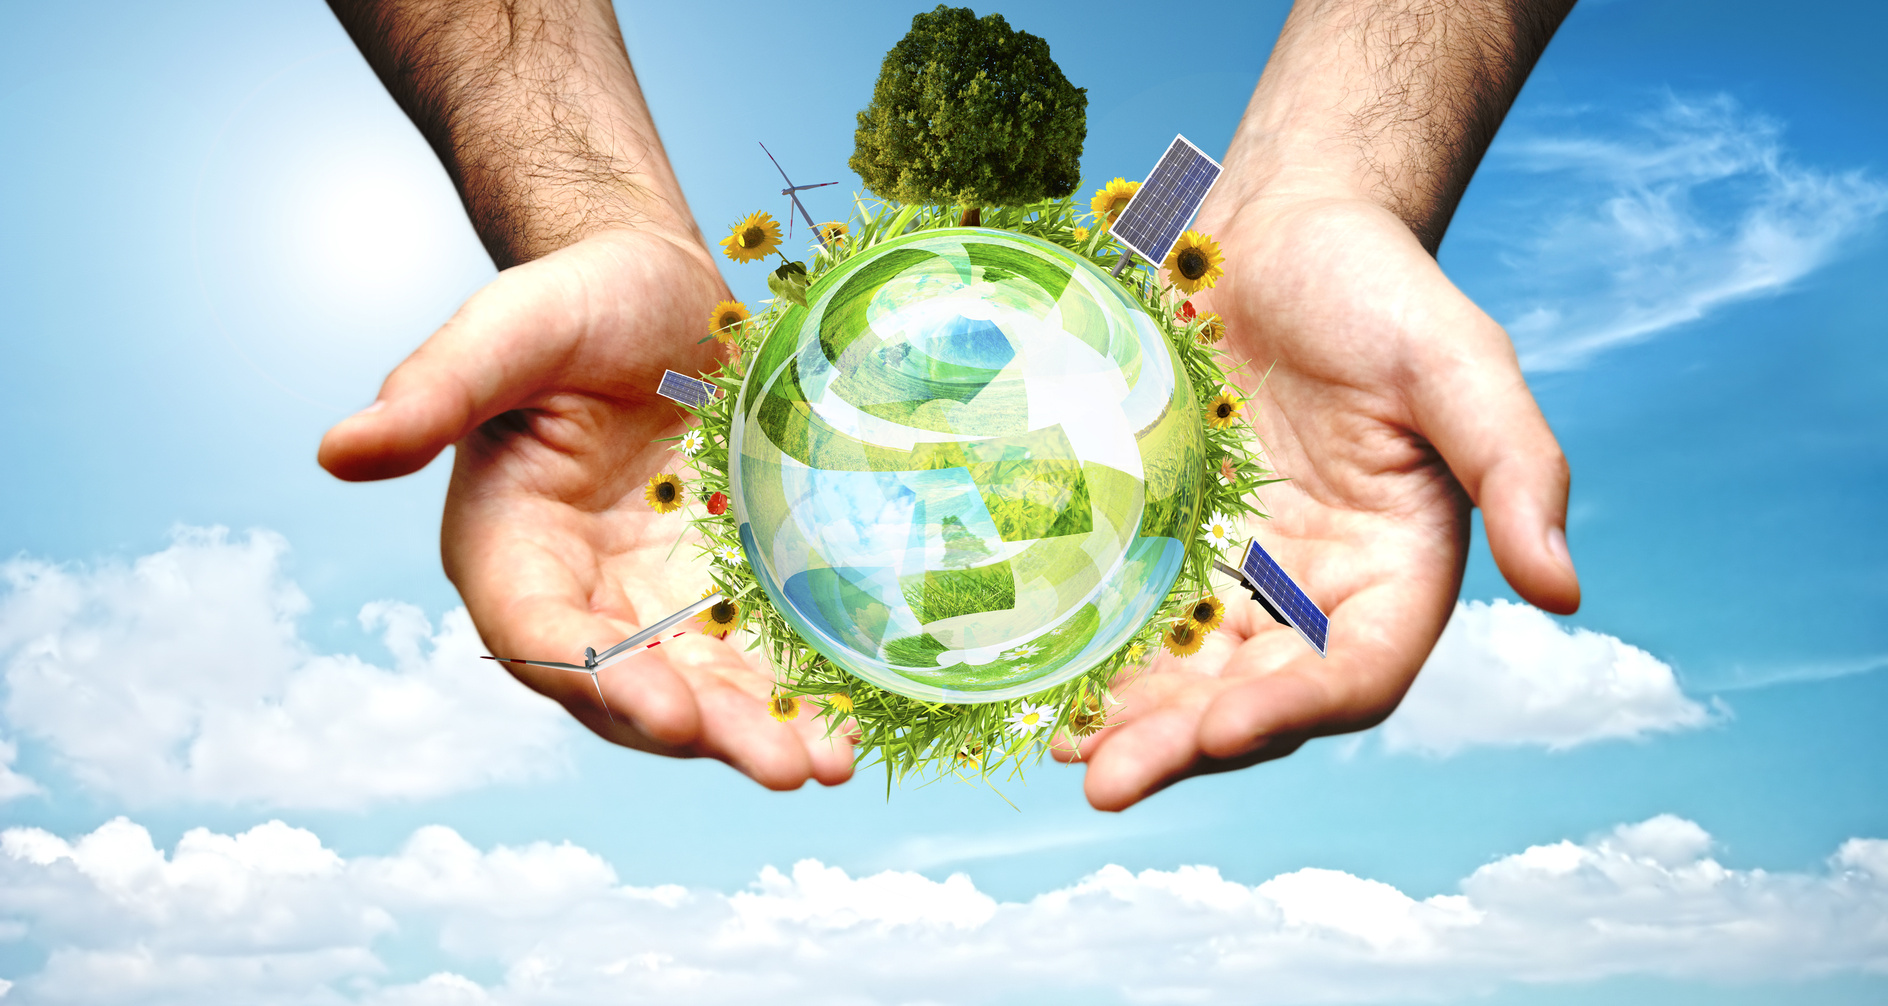 In Honor of Earth Day 2013 – ITW Sexton Can Implements Sustainable Practices